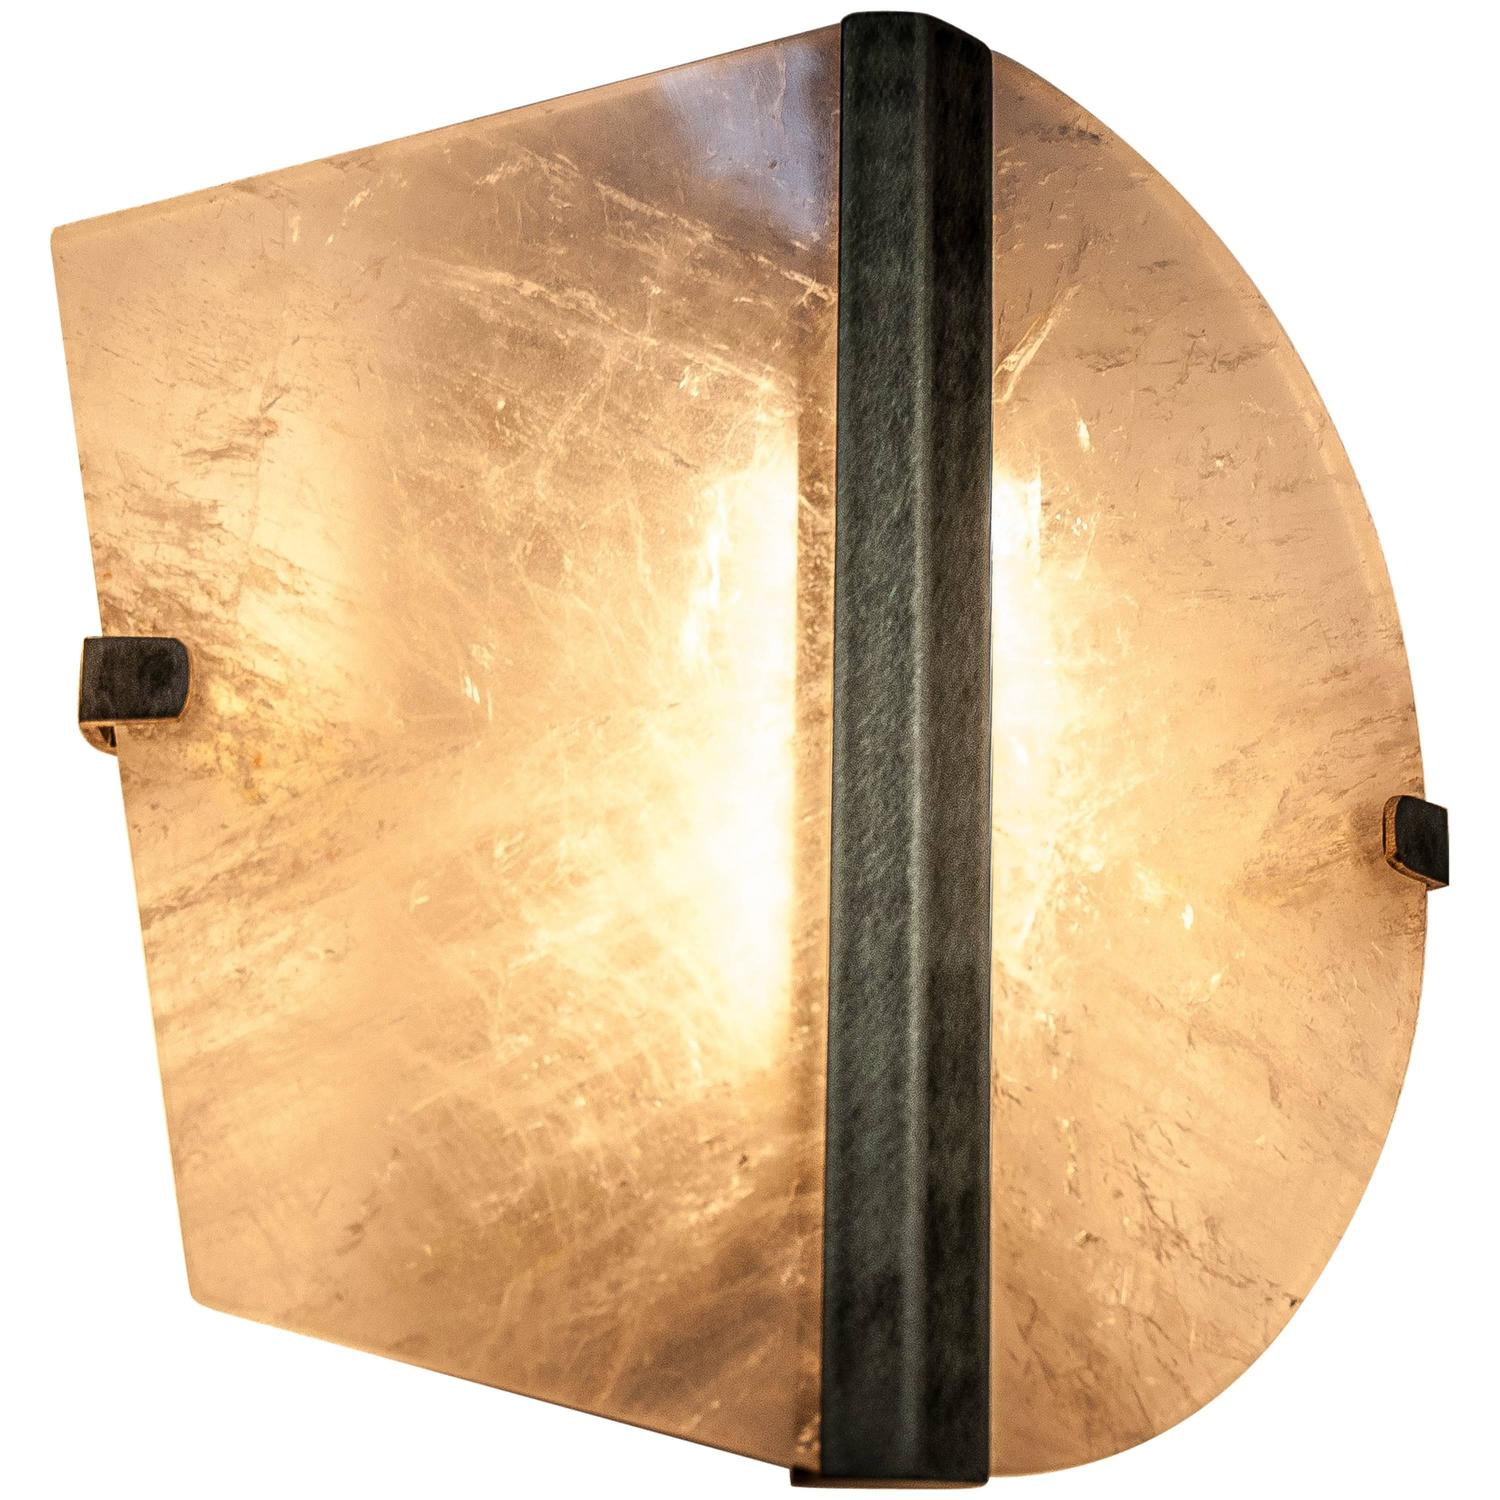 Onyx Wall Lights and Sconces - 15 For Sale at 1stdibs